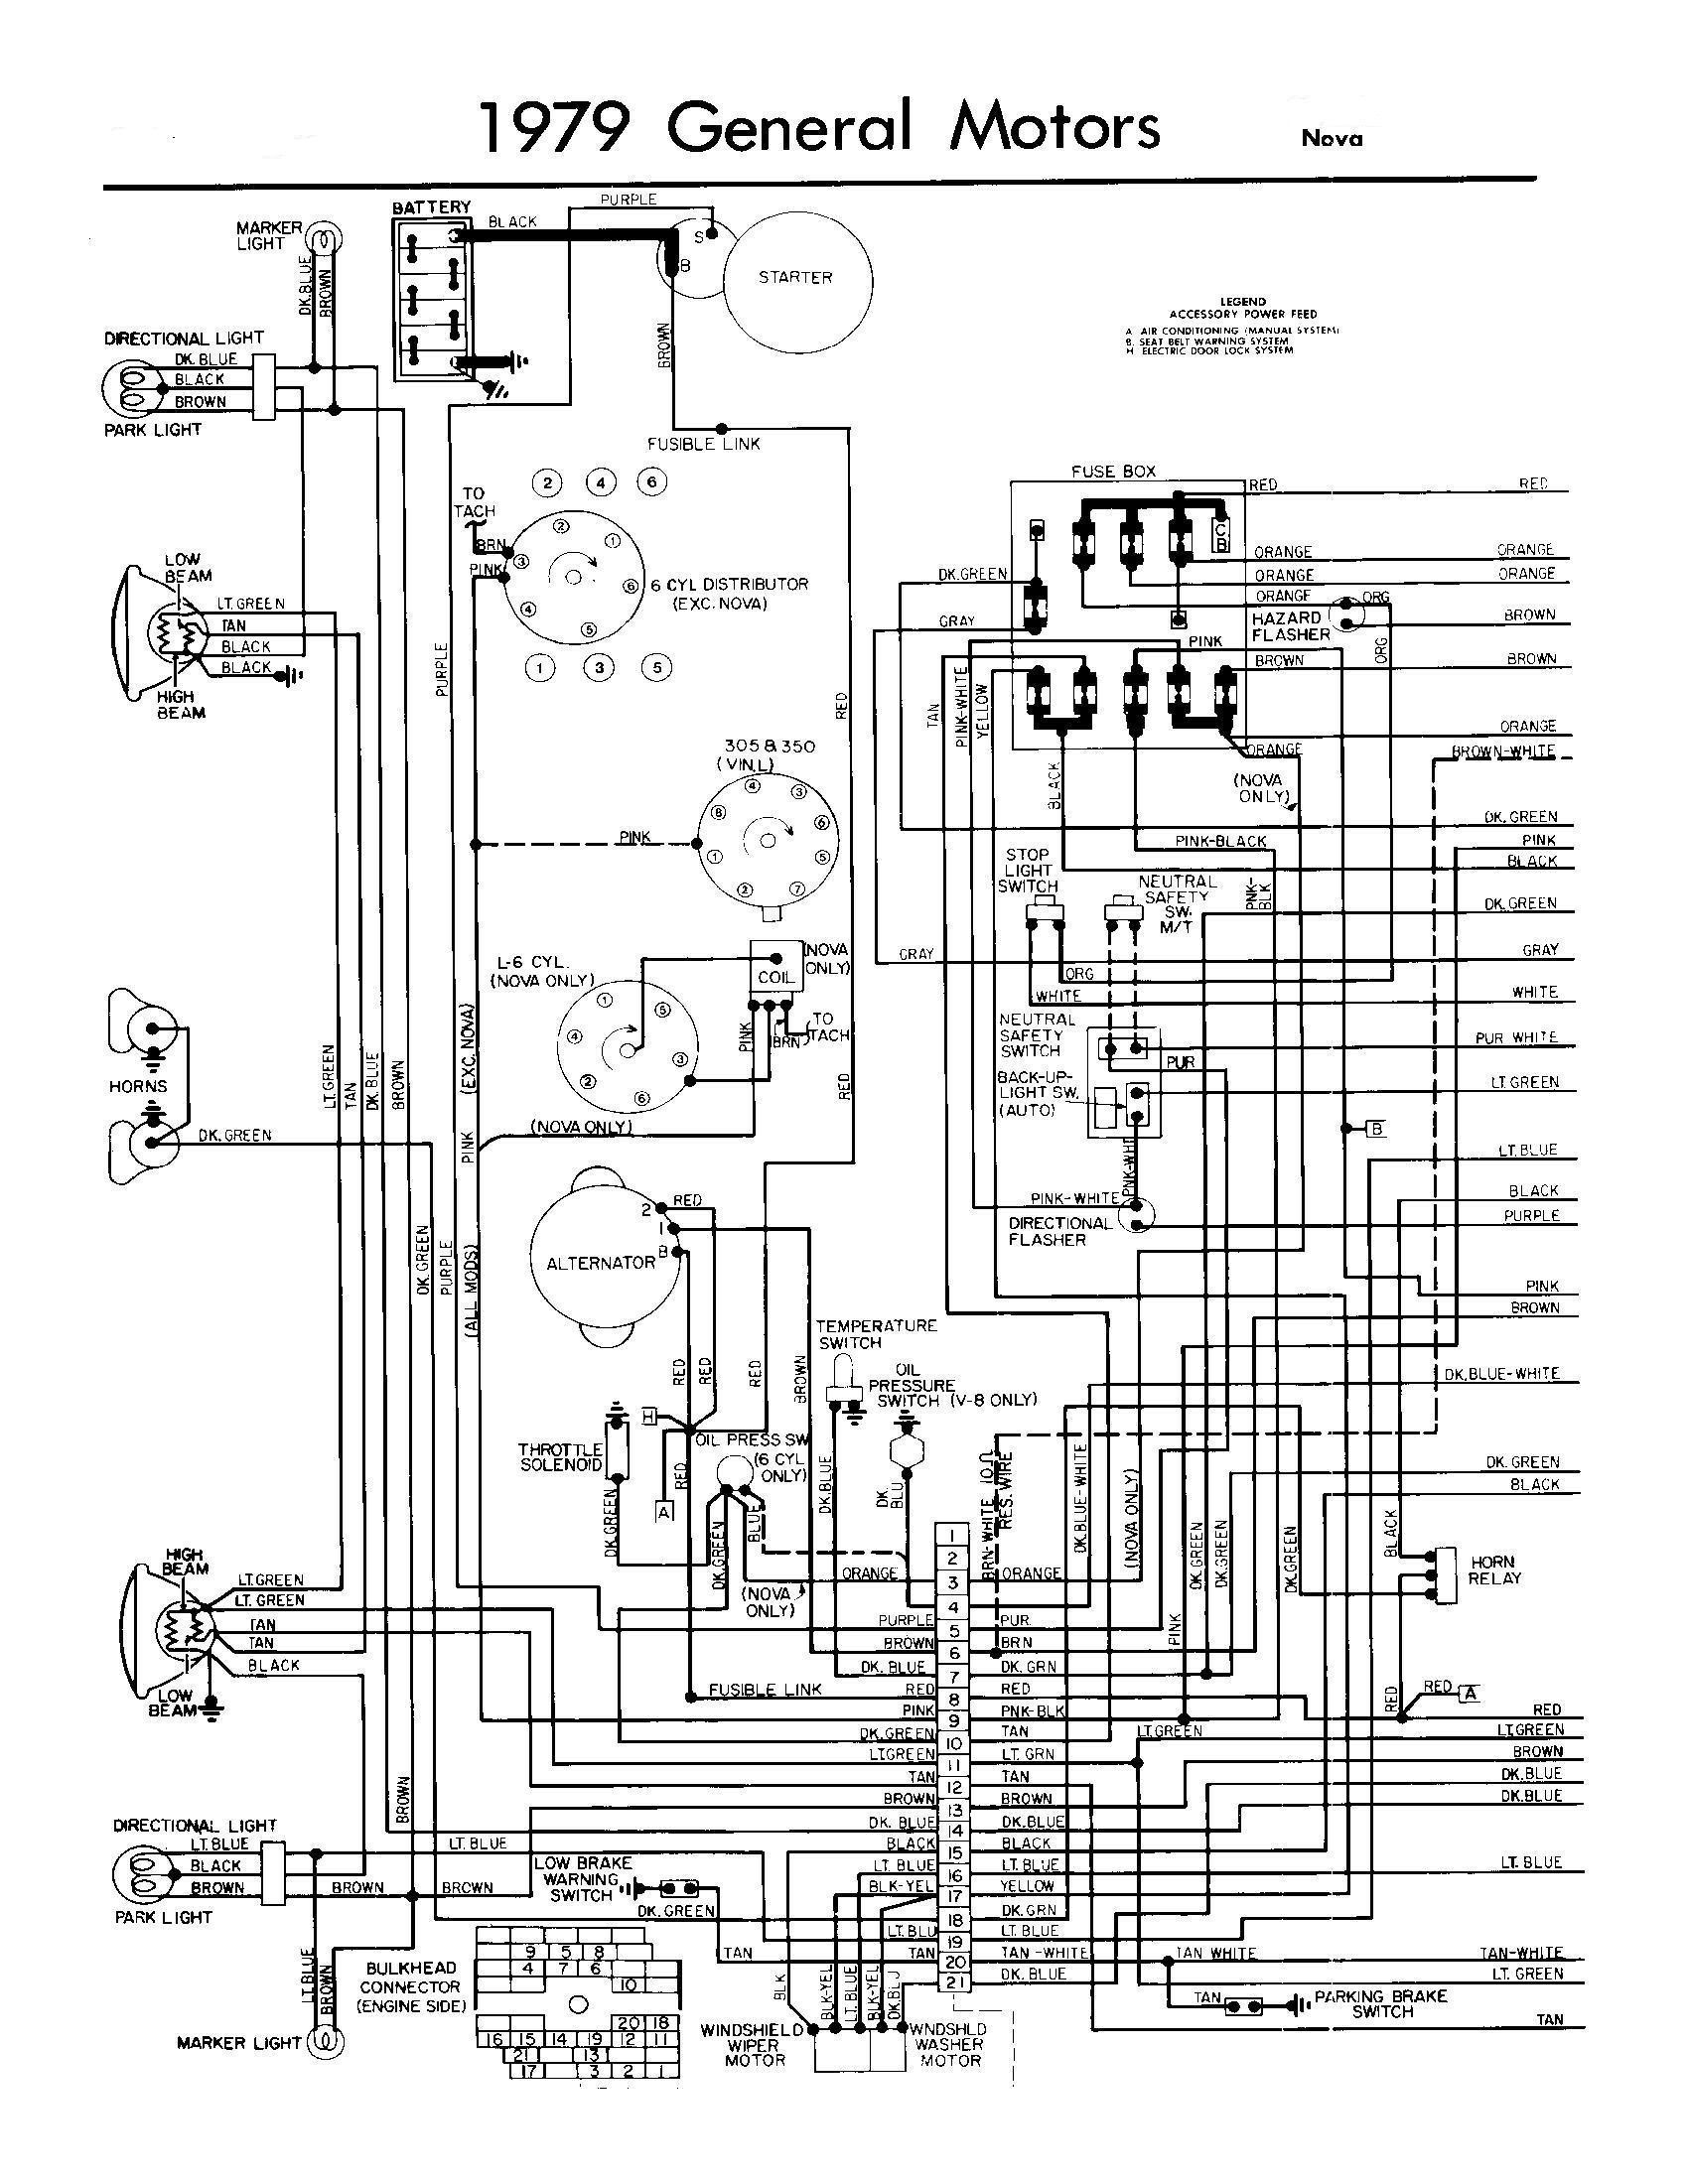 86 chevy nova wiring diagram wiring data rh retrotrek co 1967 chevy nova wiring diagram 1962 chevy nova wiring diagram